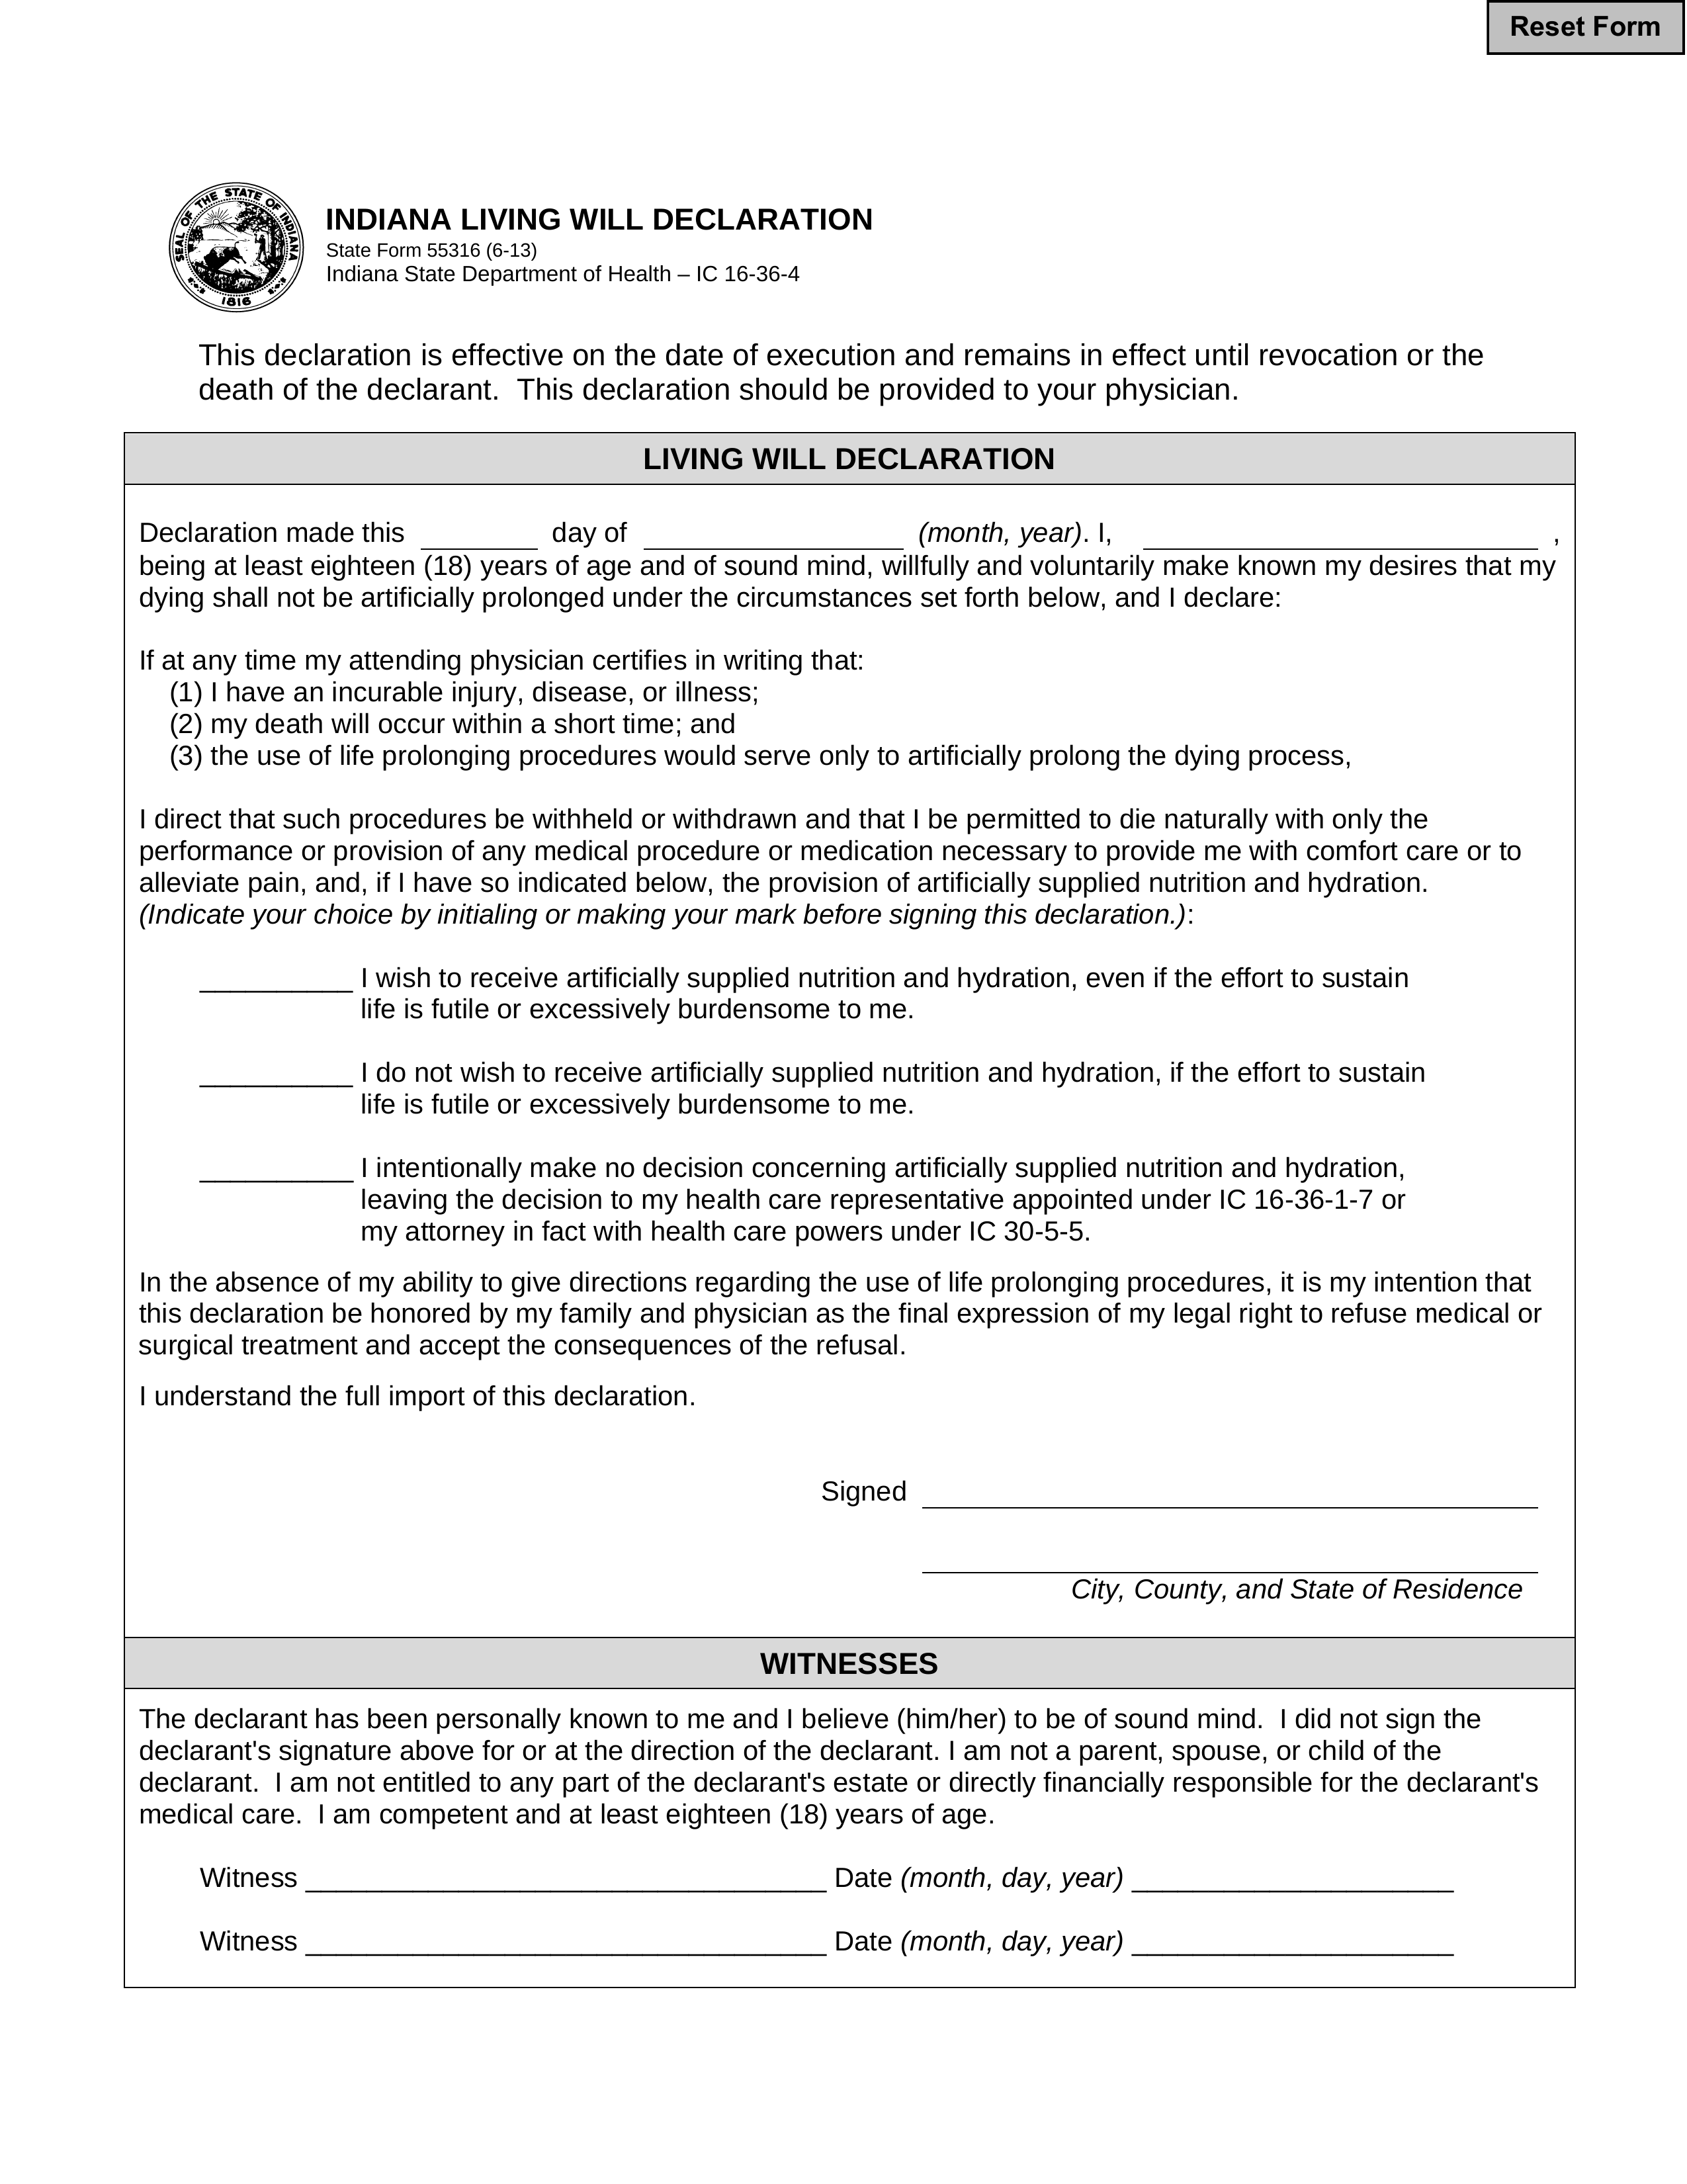 Free Indiana Living Will Declaration Form 55316 Word